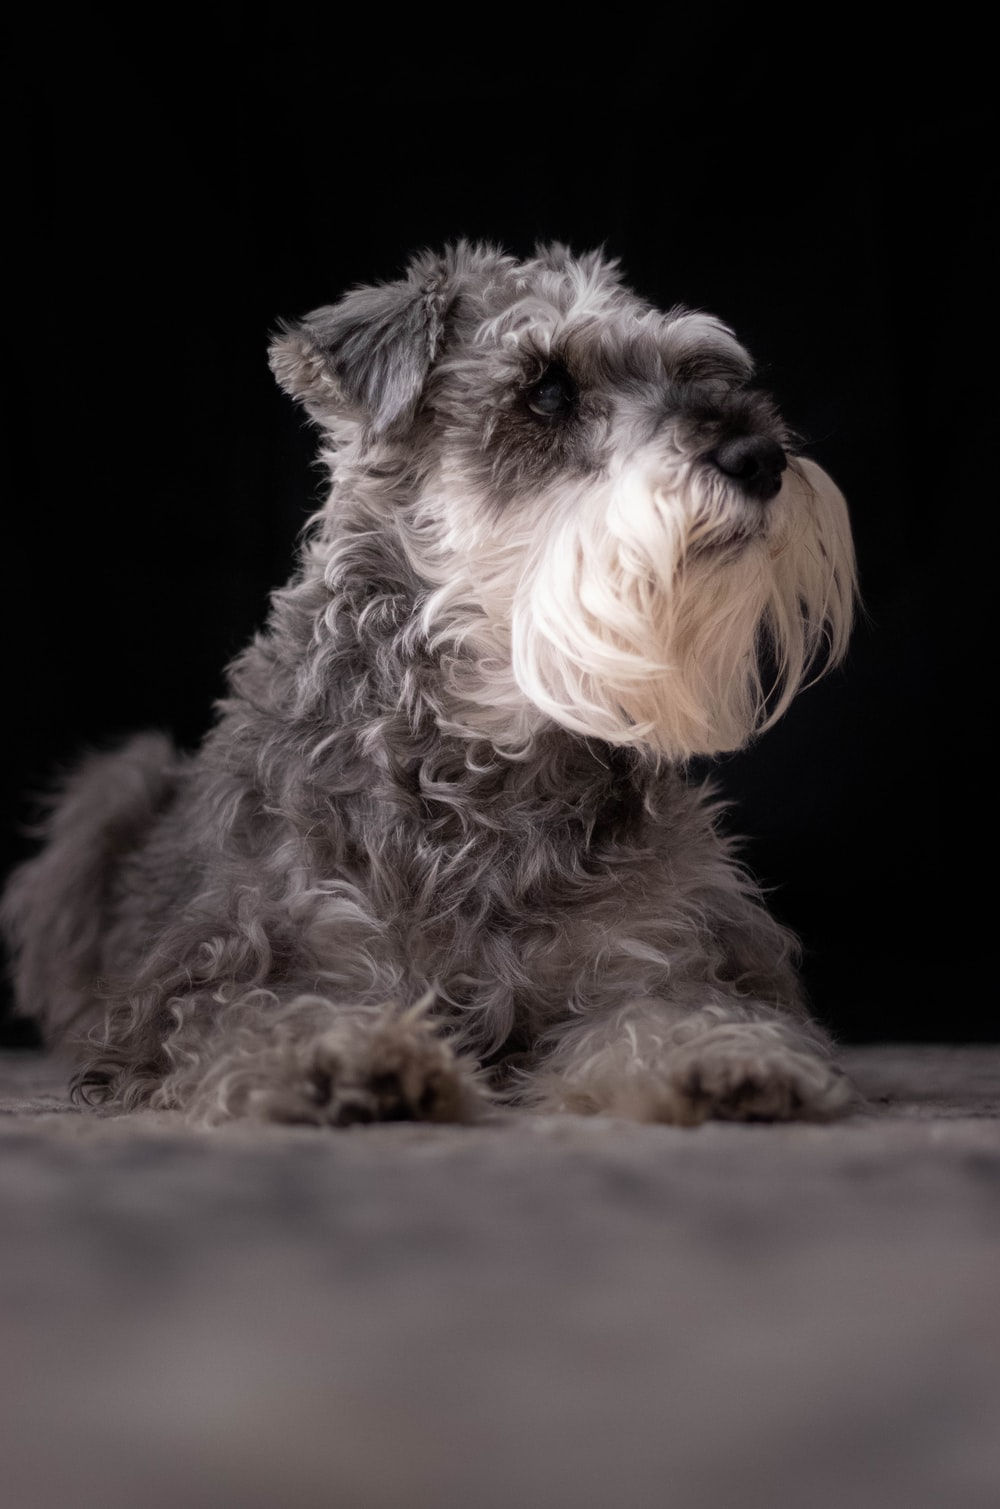 long-coated gray and white dog